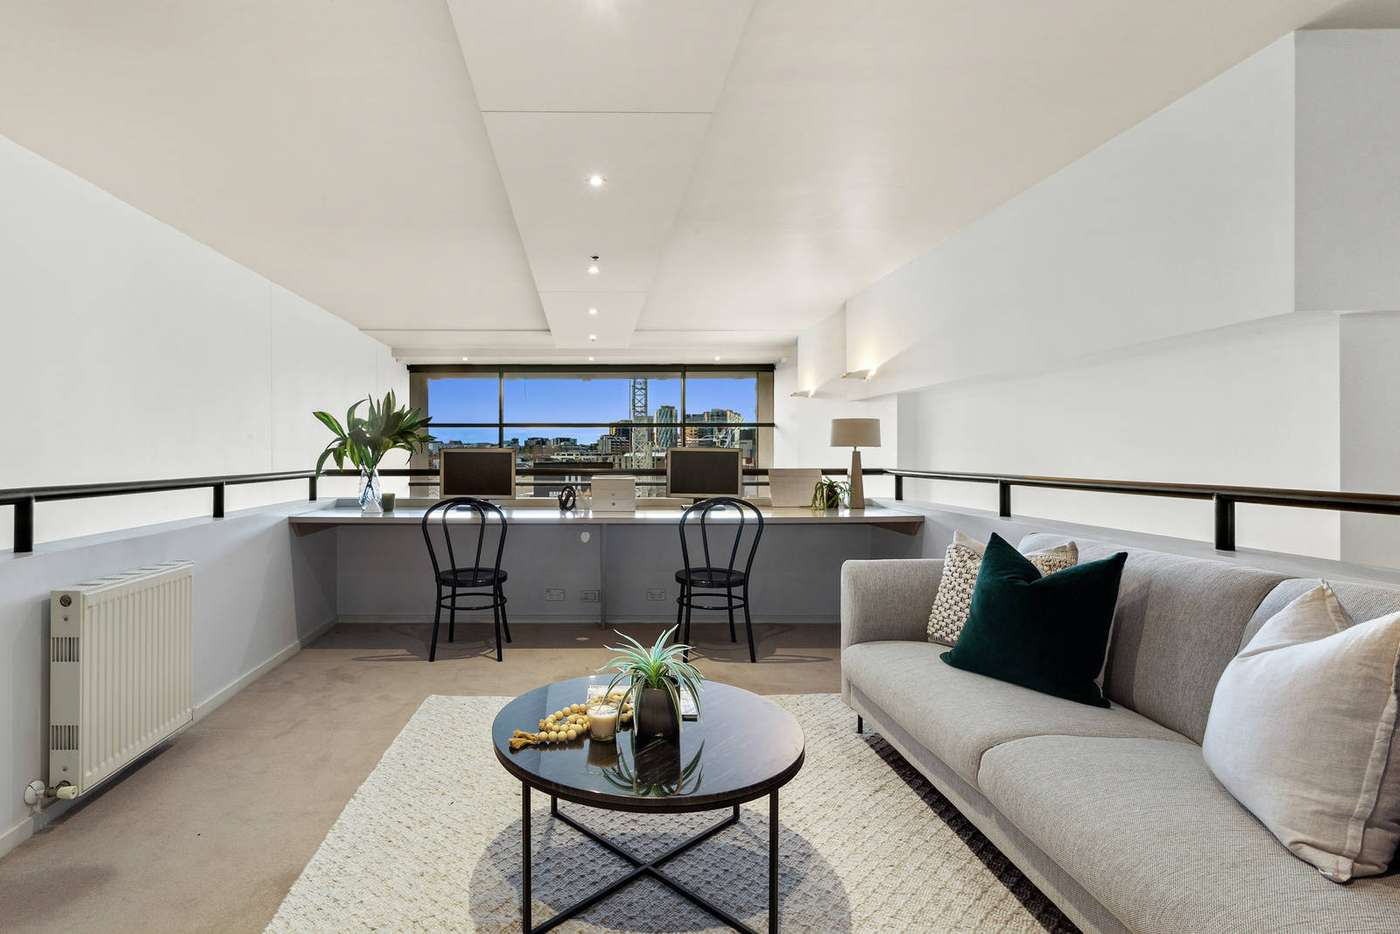 Fifth view of Homely apartment listing, 12/181 Franklin Street, Melbourne VIC 3000